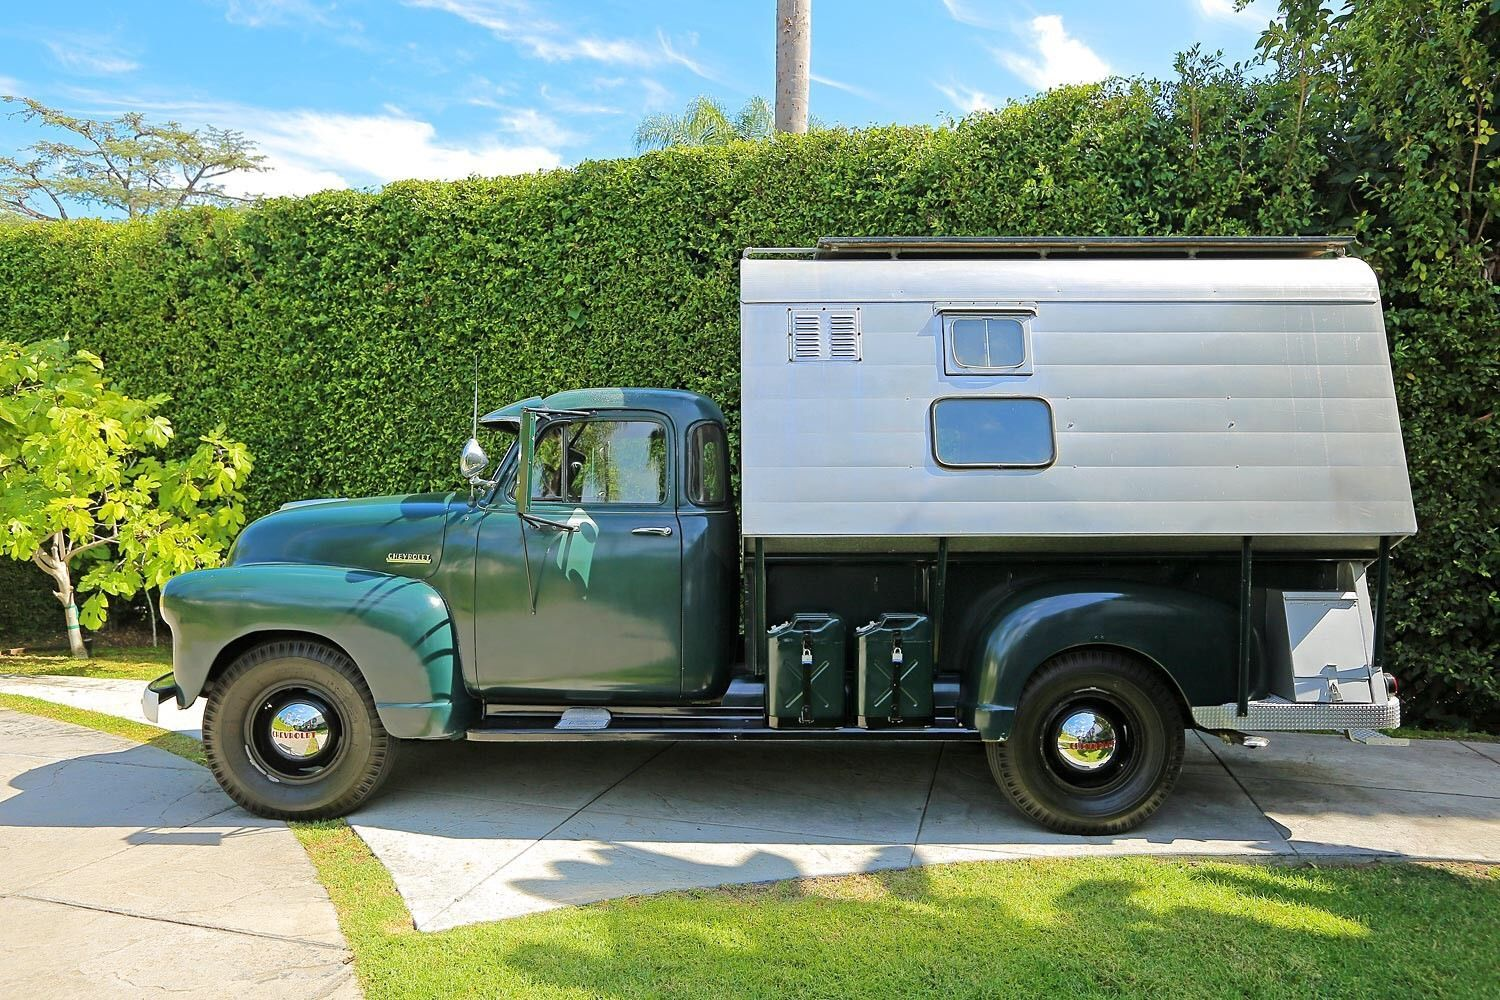 1952 Chevrolet Camper, last car driven by Steve McQueen | Chevy 3800 ...